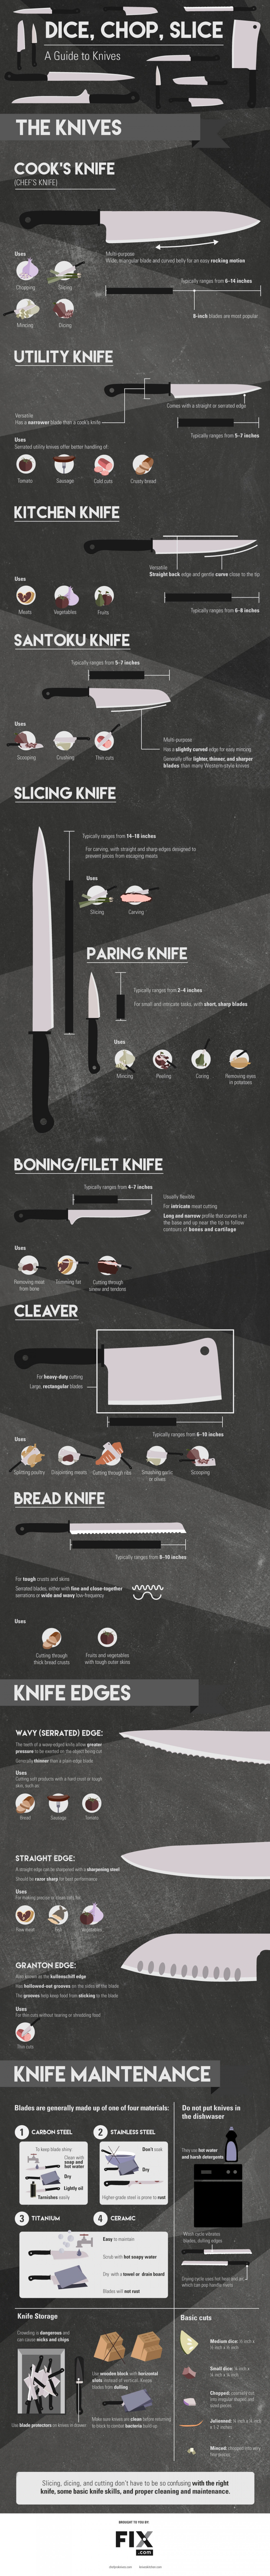 guide to kitchen knives infographic